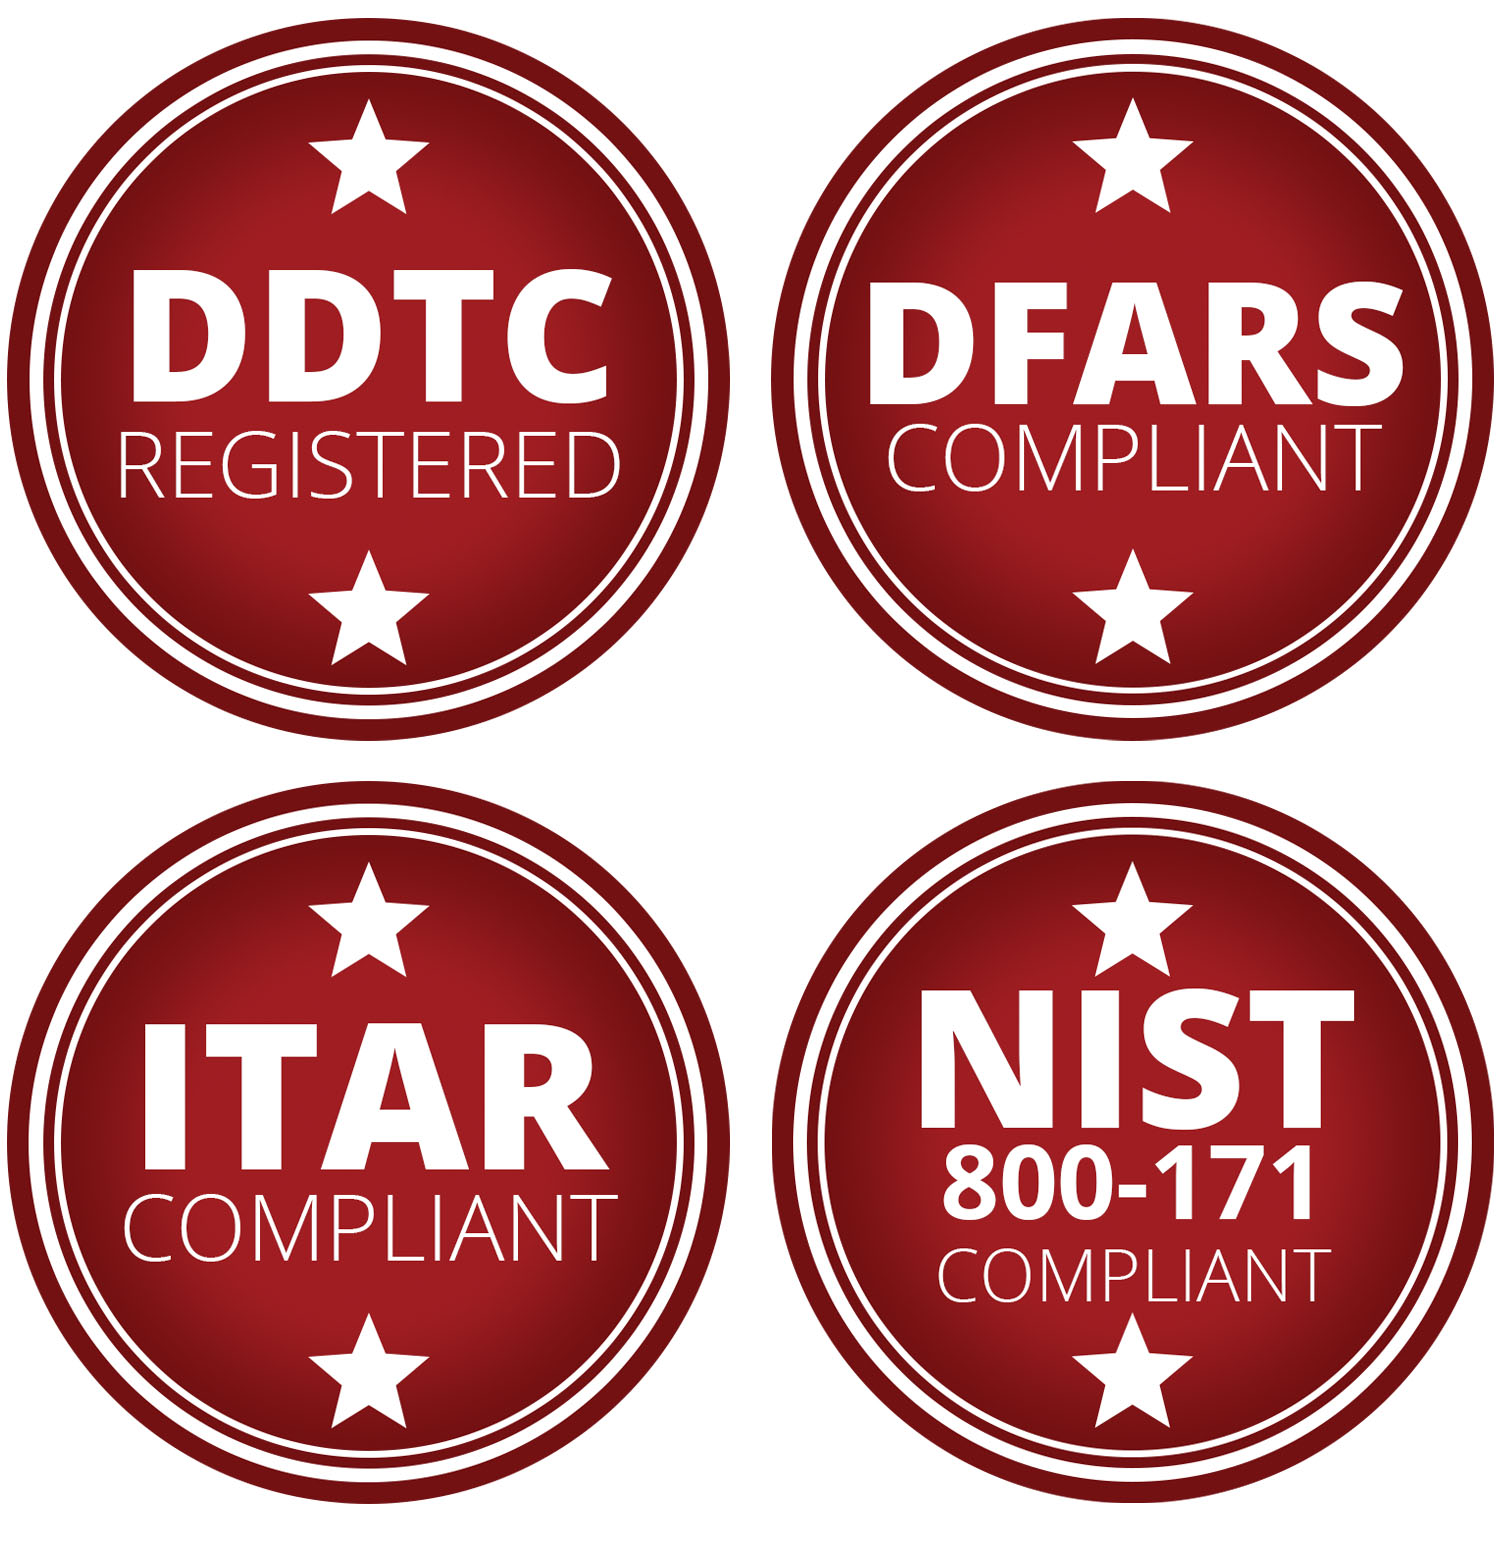 eec-compliance-badges-1